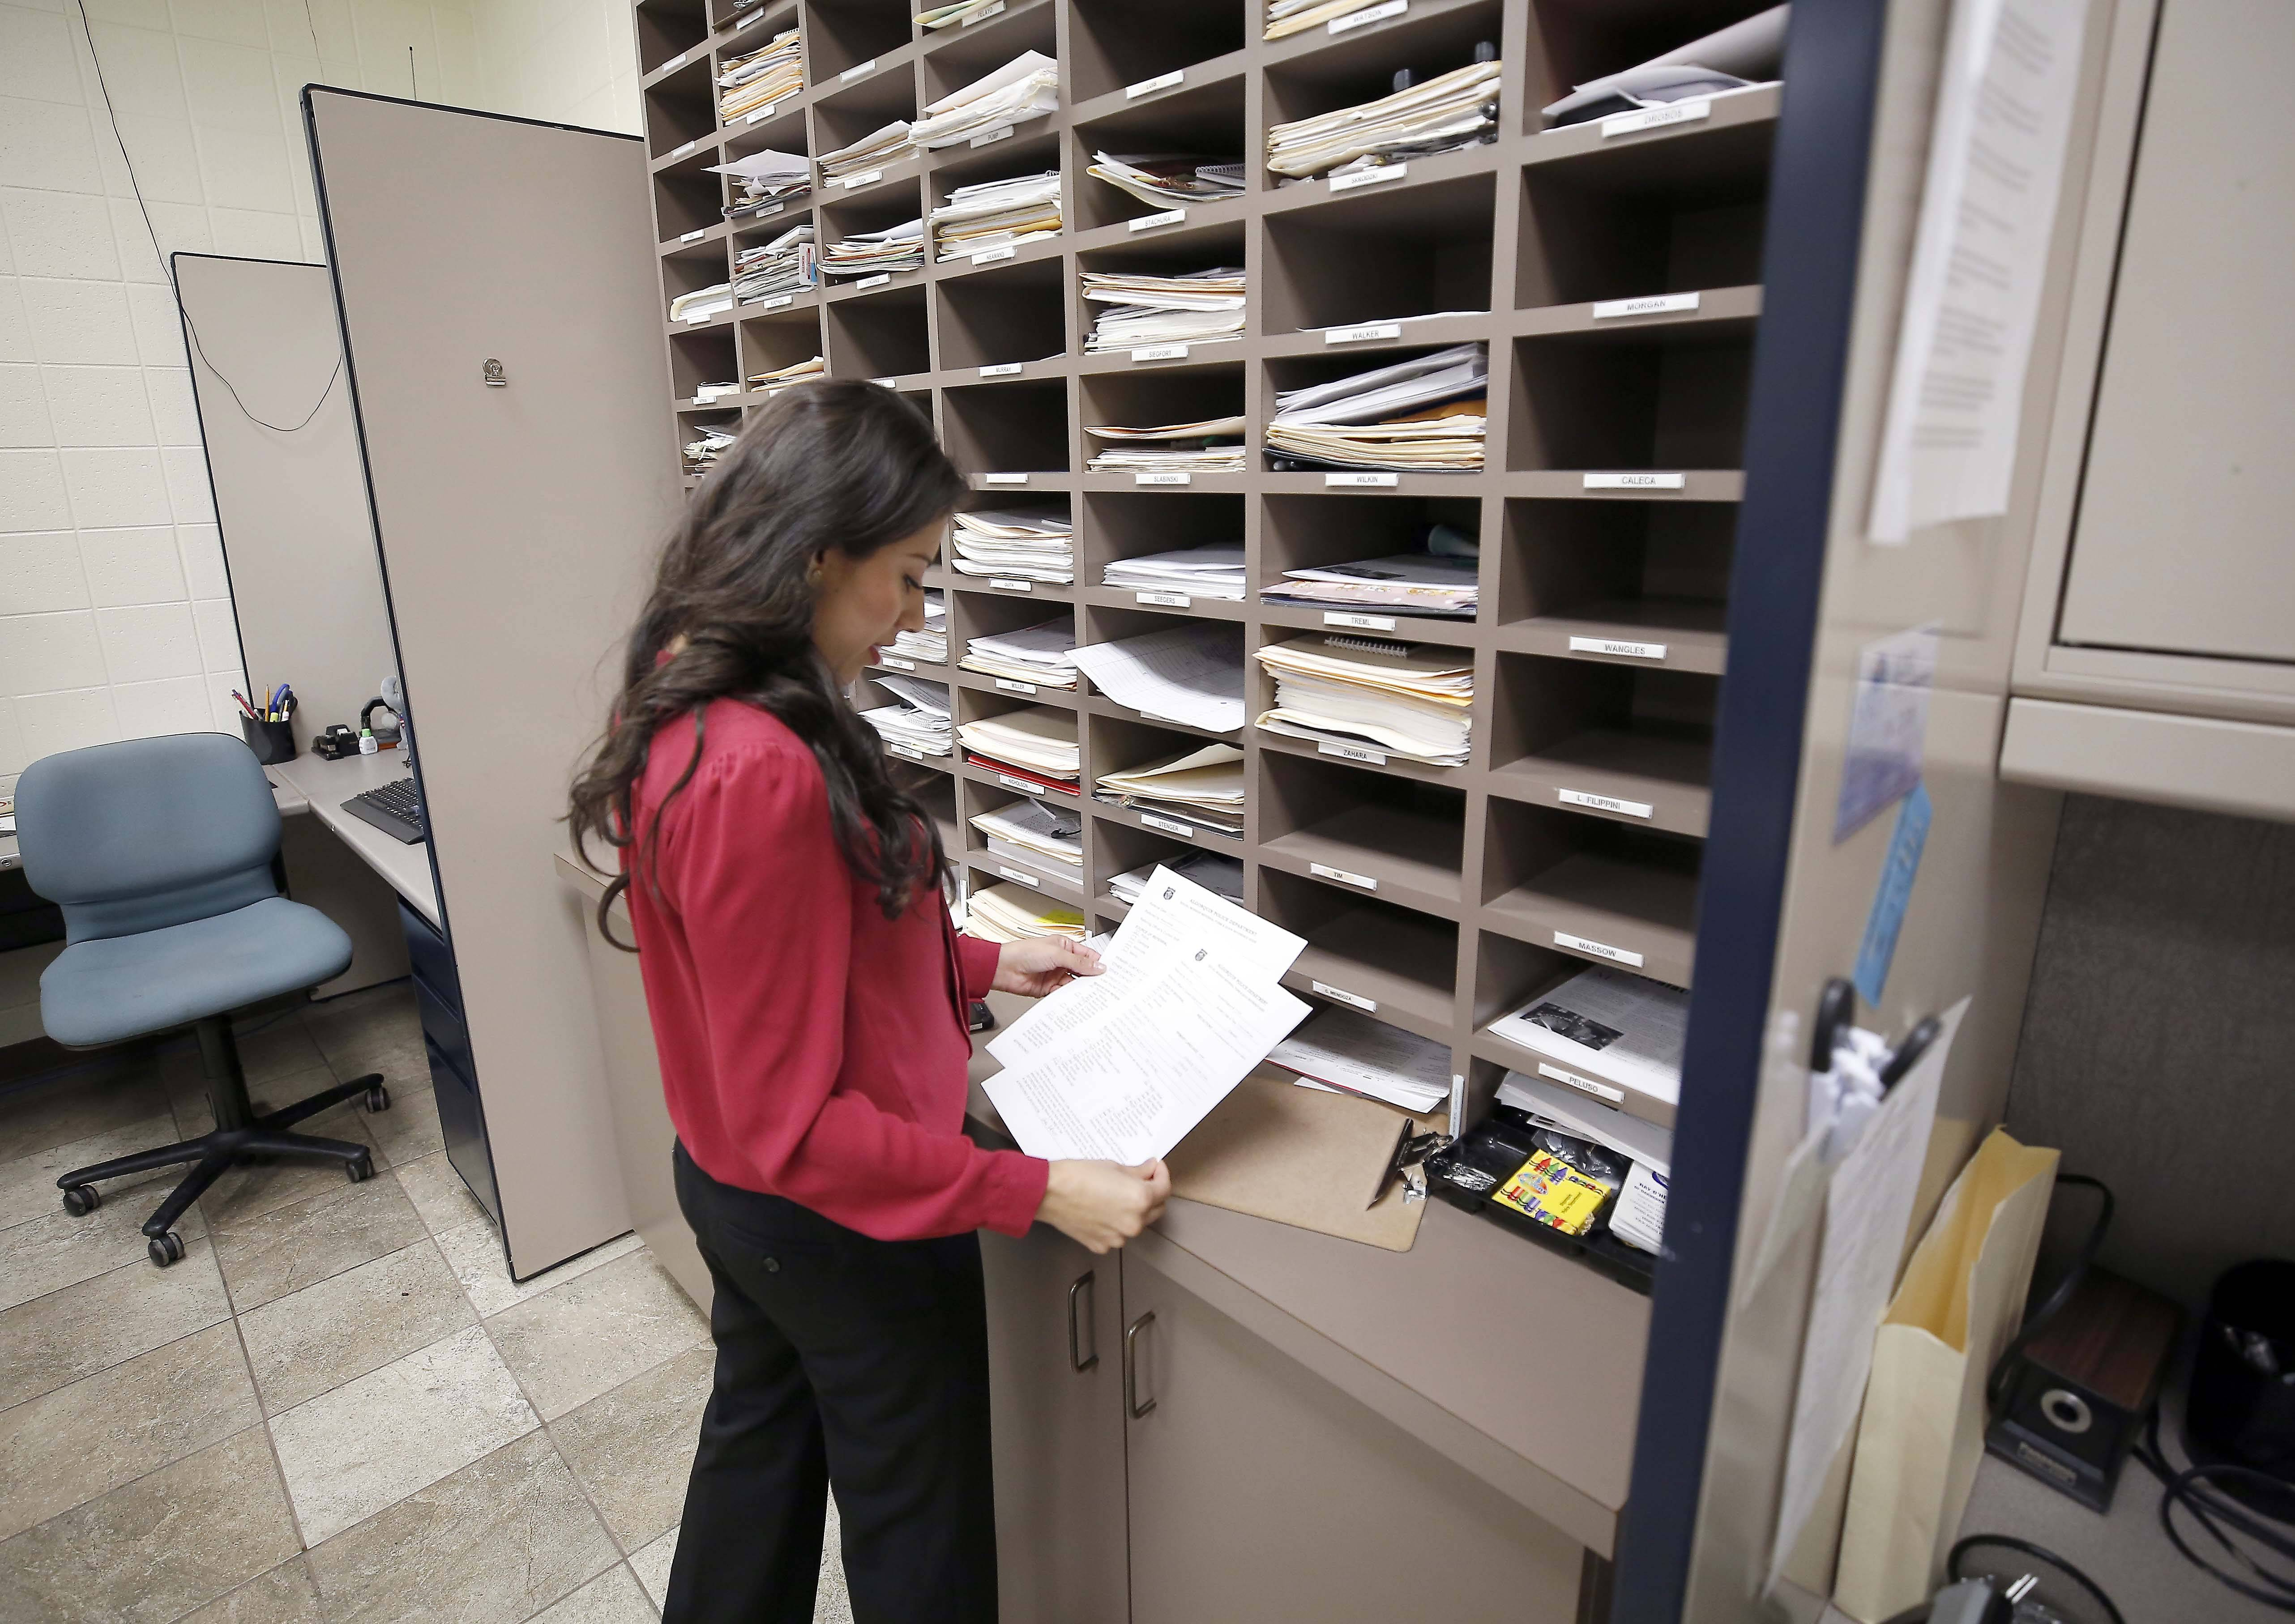 Case worker Cristina Mendoza of the Aurora-based Association for Individual Development assesses needs and identifies resources for individuals referred to her by police departments in McHenry County.